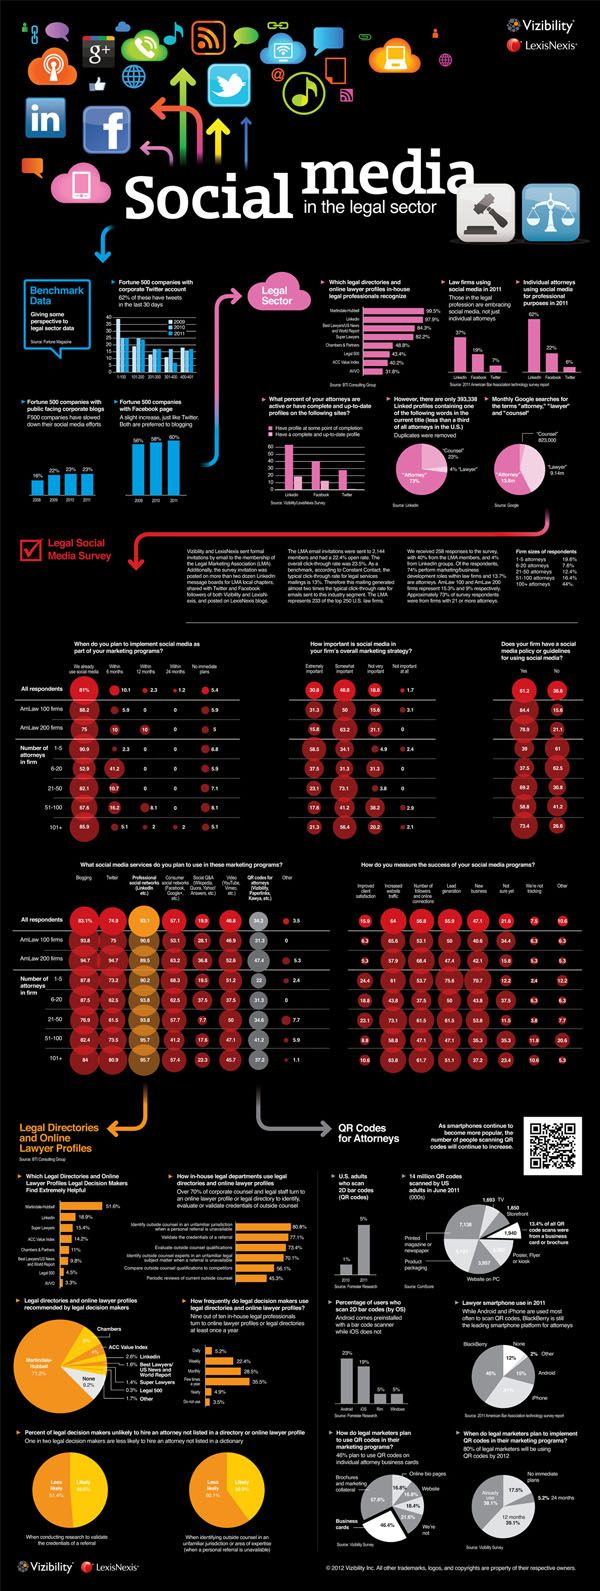 Large legal firms need to get smarter about social media to compete (infographic)